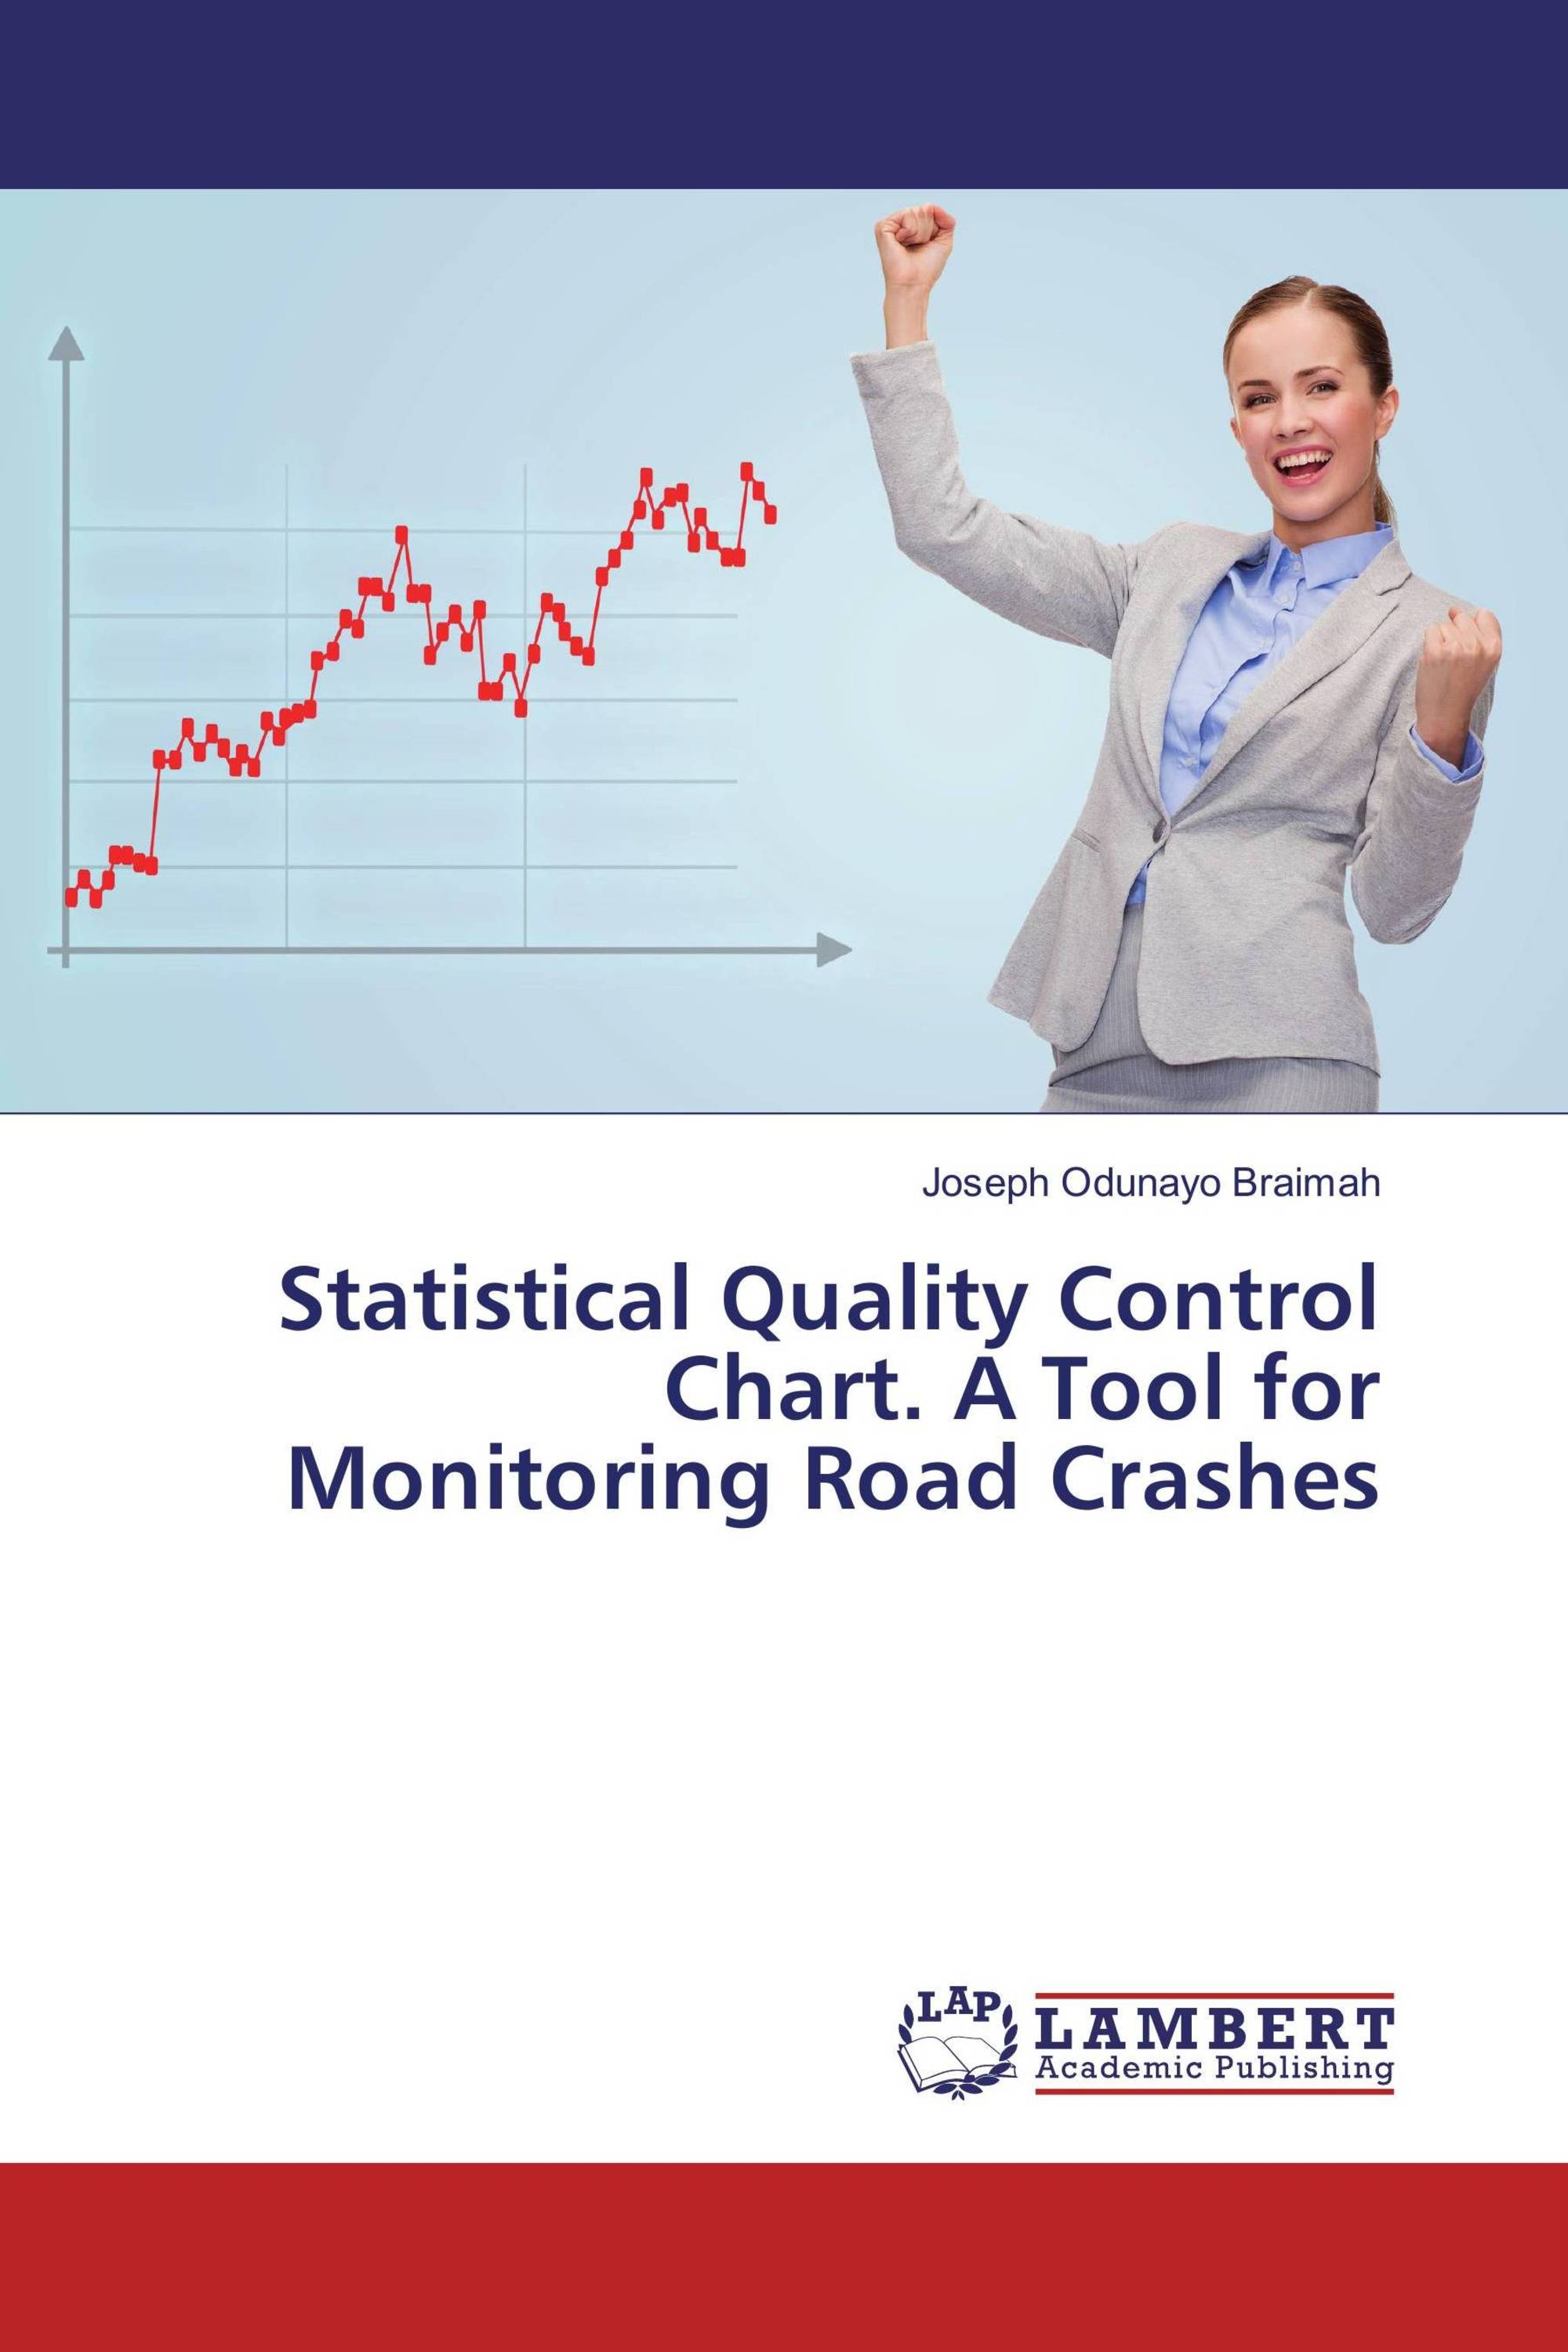 statistical quality control chart a tool for monitoring road